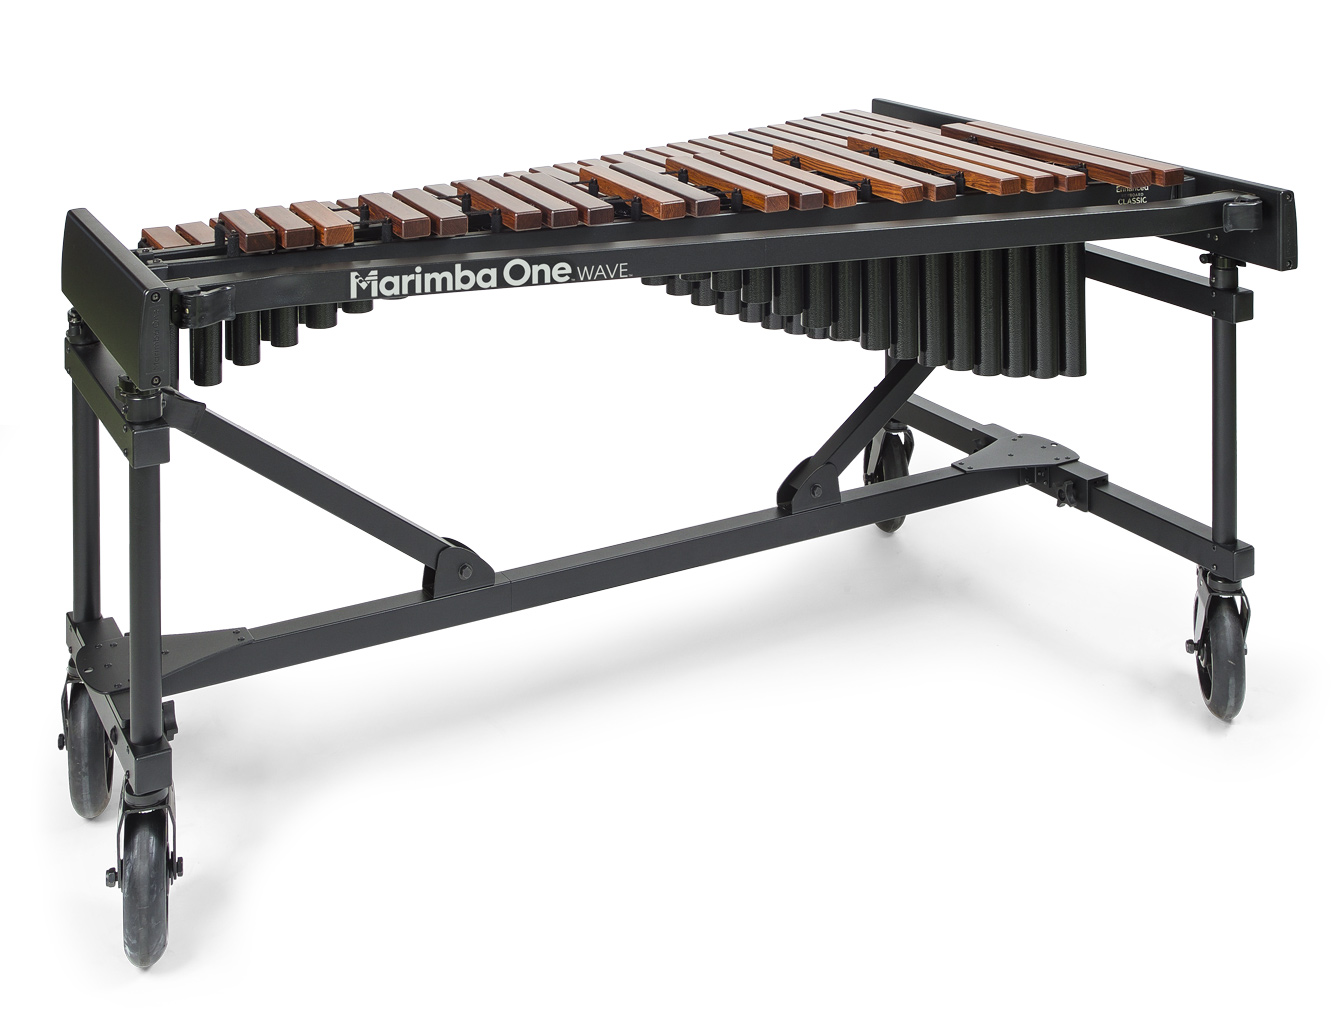 #9721 Marimba One  Xylophone 3.5 Octave with Traditional keyboard 3.5個八度、傳統琴鍵、玫瑰木